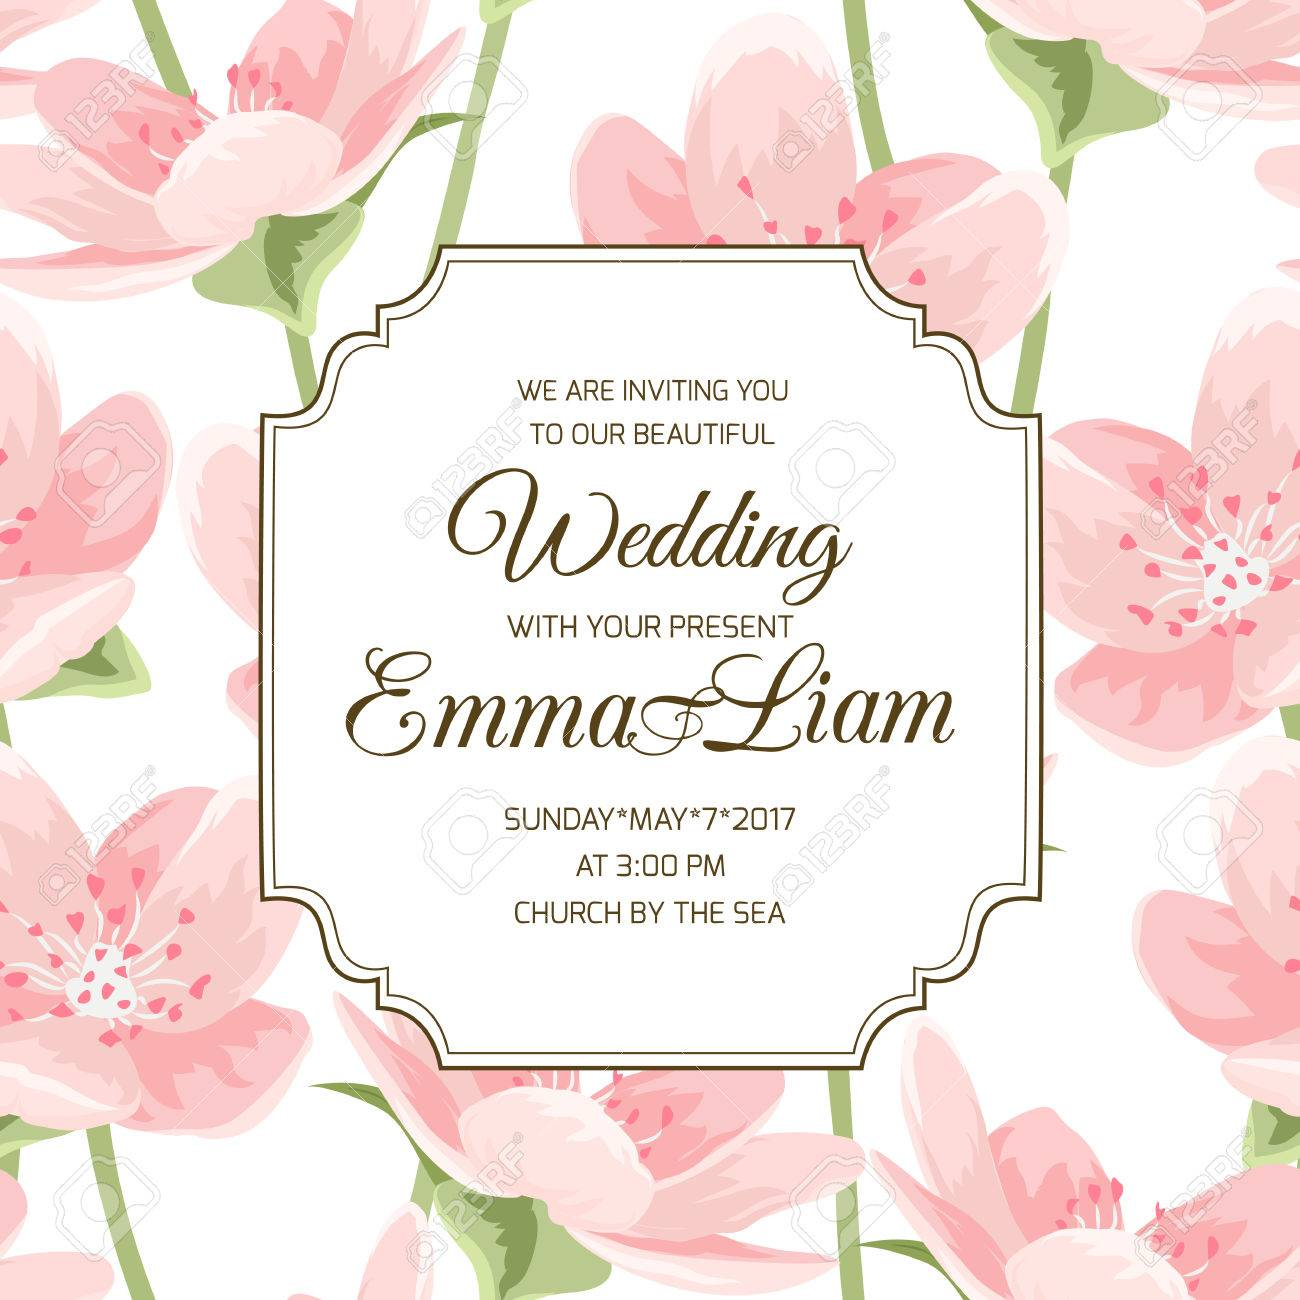 Wedding event invitation card blooming spring sakura magnolia vector wedding event invitation card blooming spring sakura magnolia cherry blossom flowers pink petals on white background stopboris Images